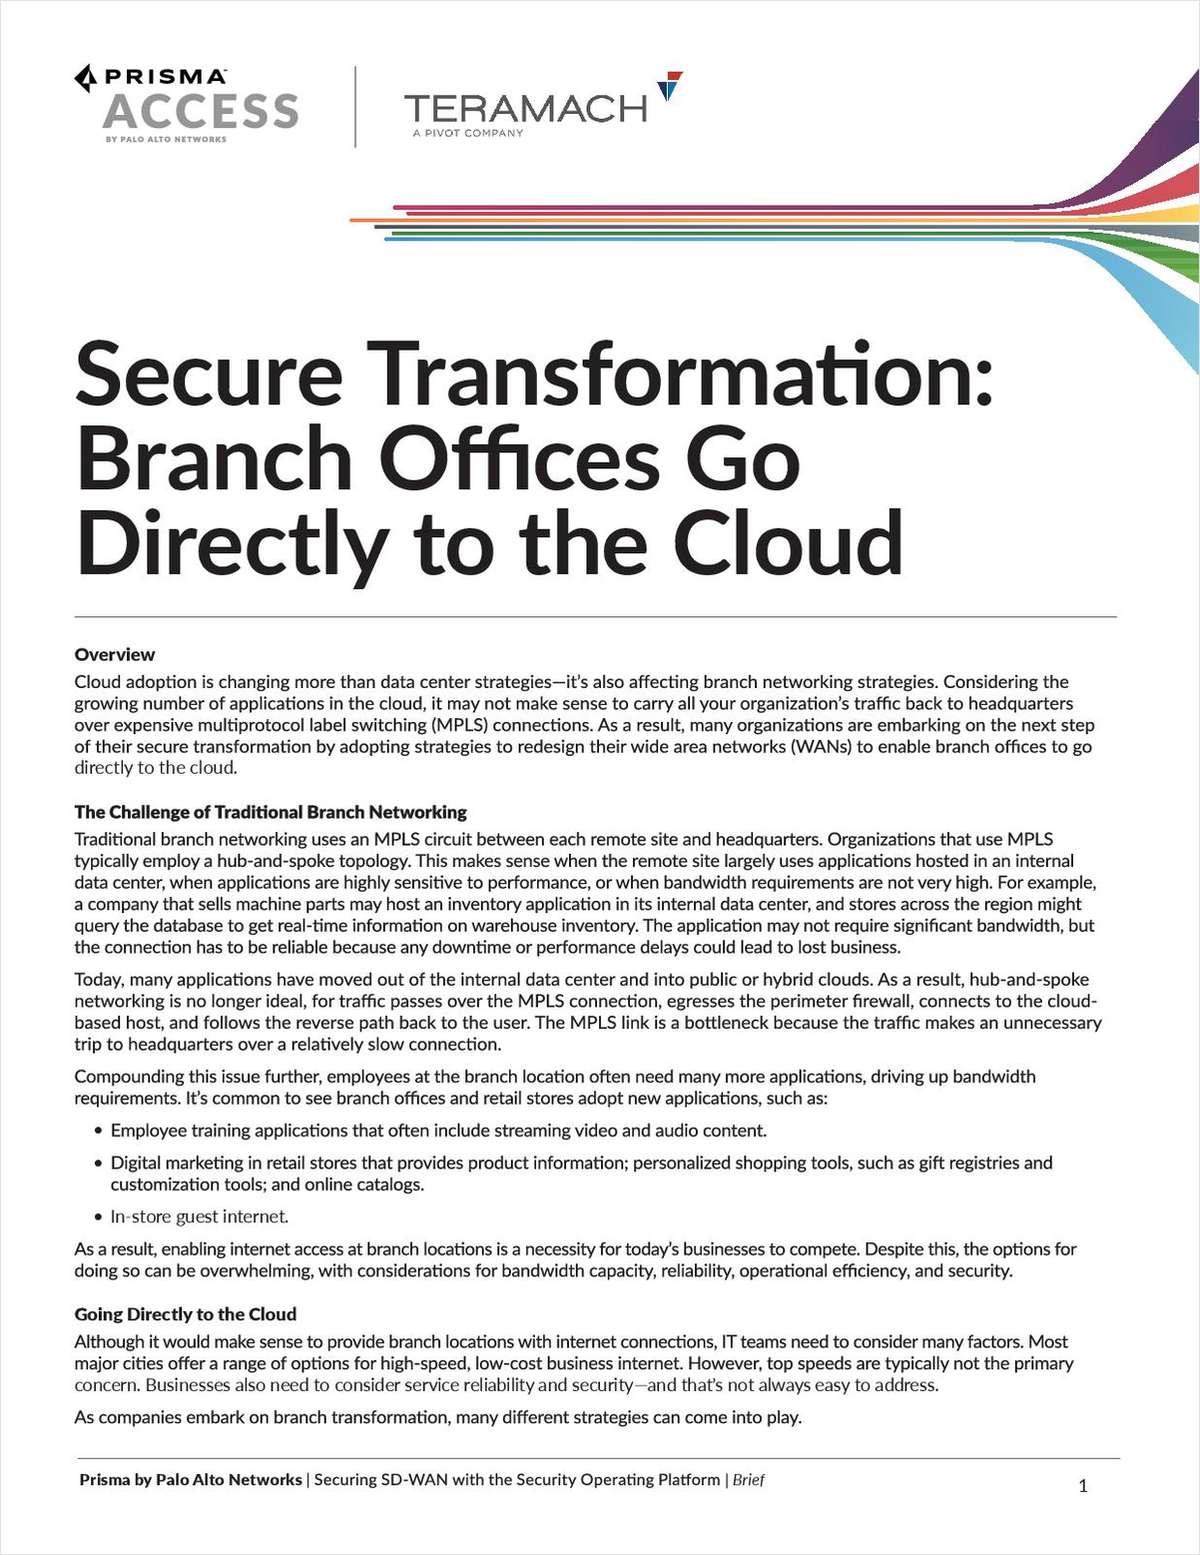 Secure Transformation: Branch Offices Go Directly to the Cloud